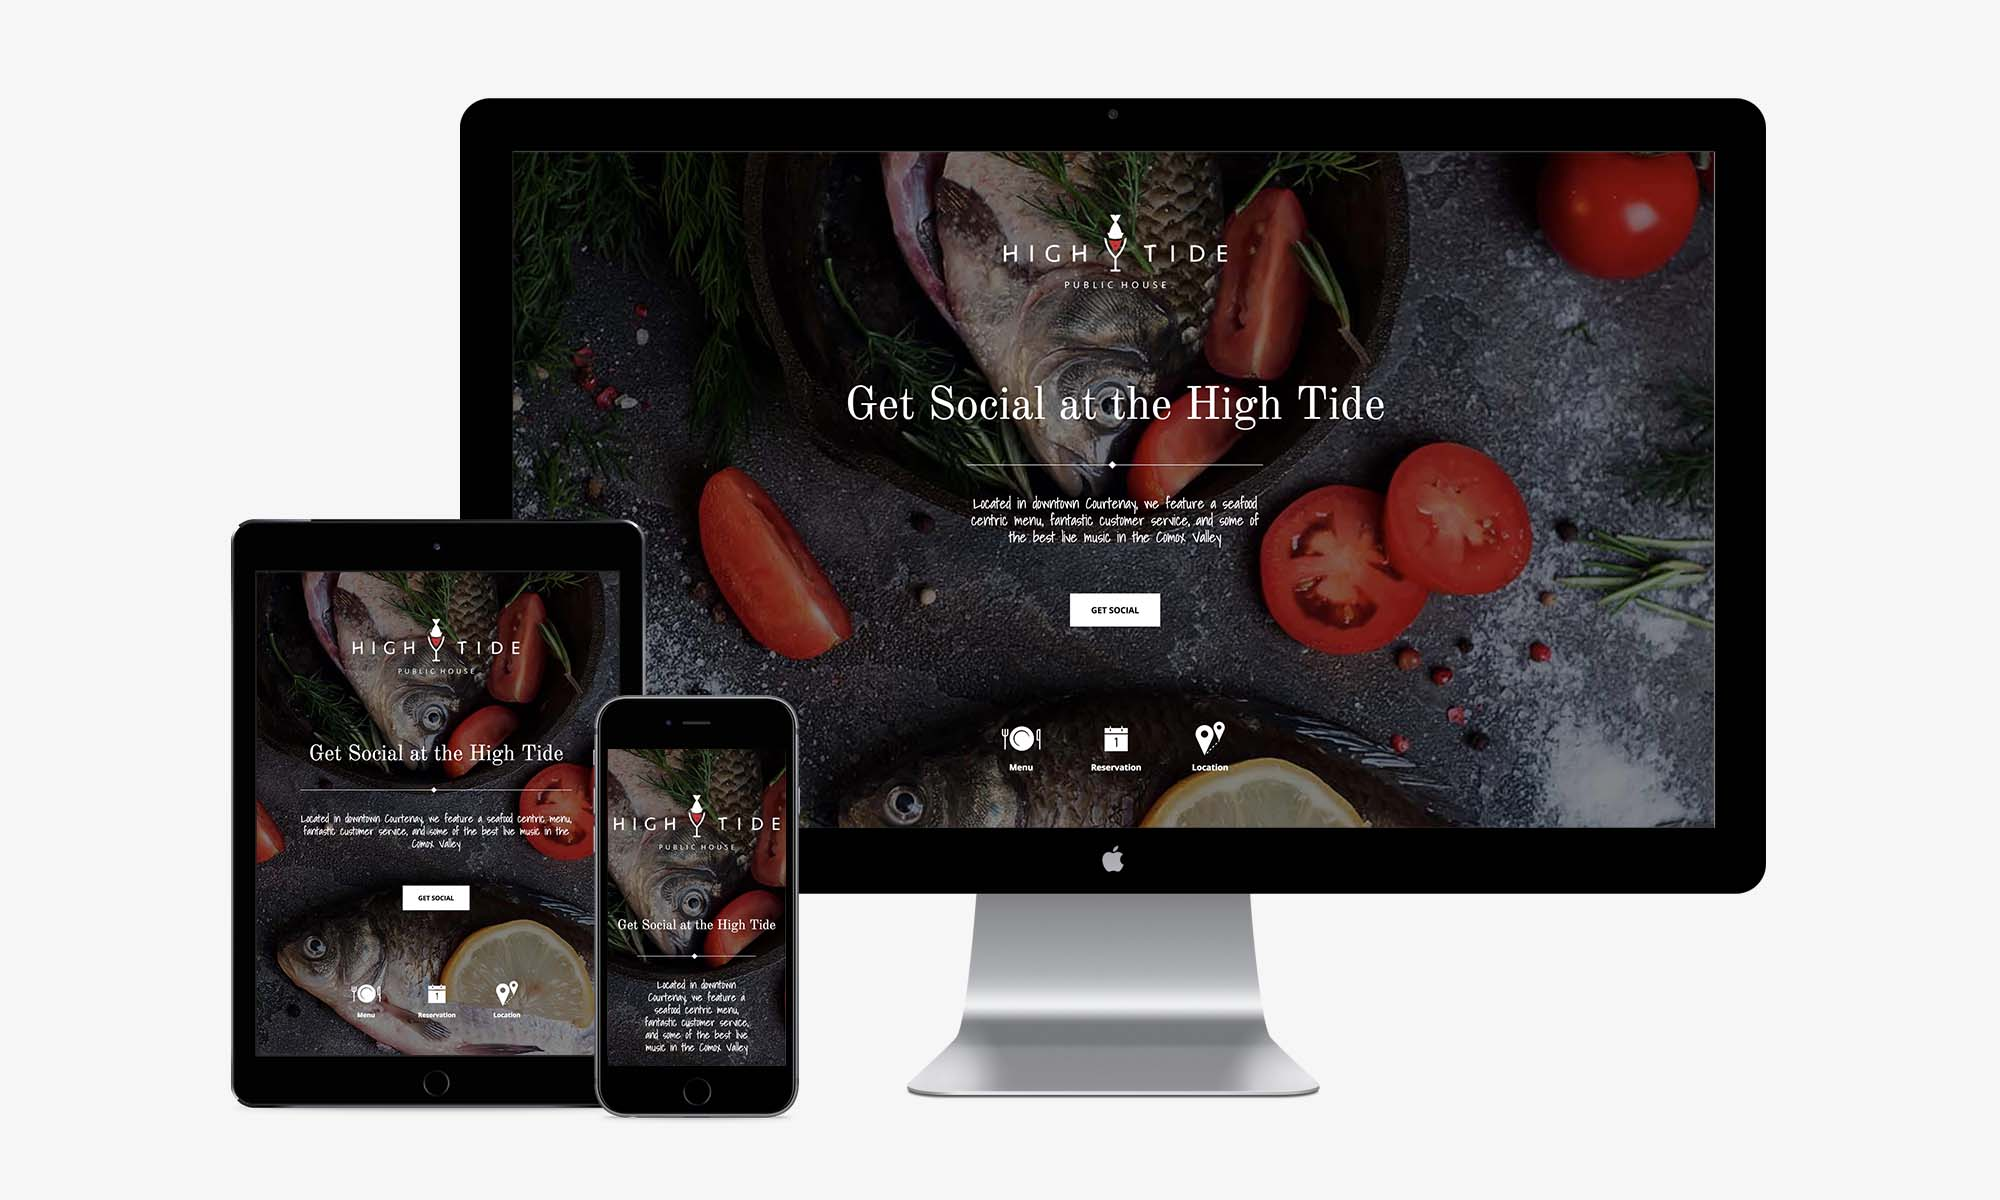 High Tide Public House responsive web design by Better Mousetrap Marketing